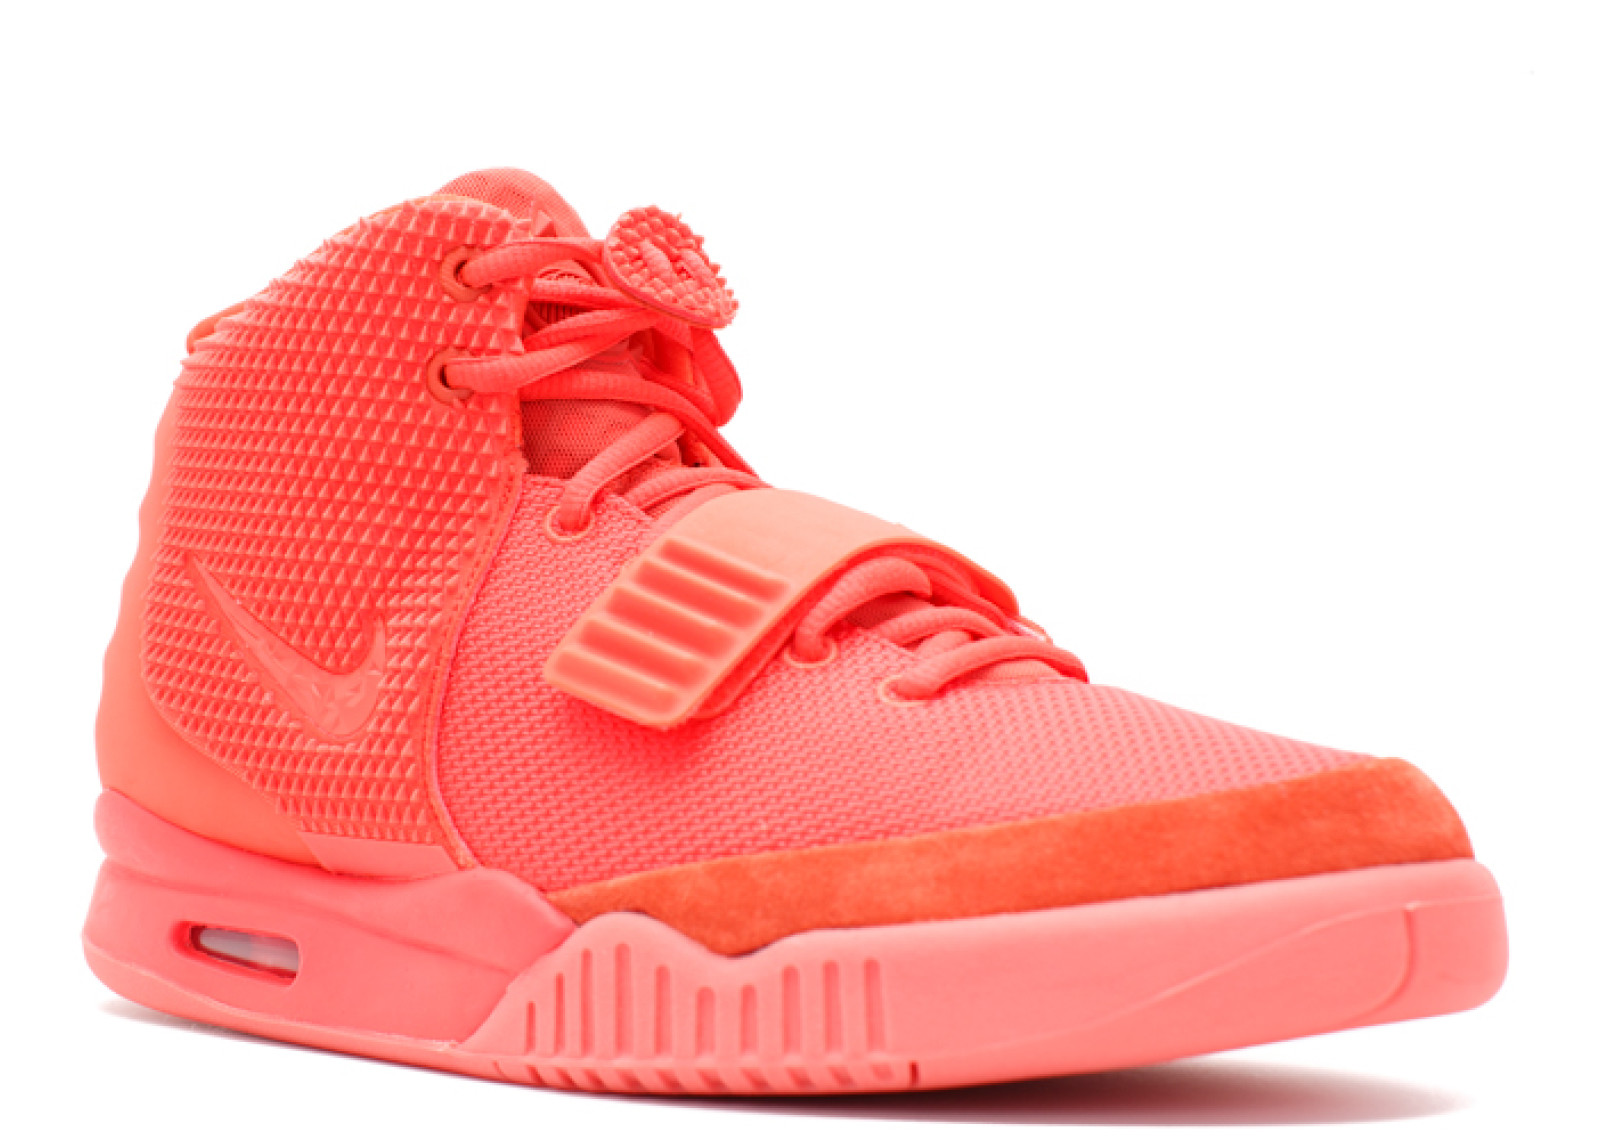 9e50f894b65496 Yeezy 2 Red October Hummer Warhead Air Max 1